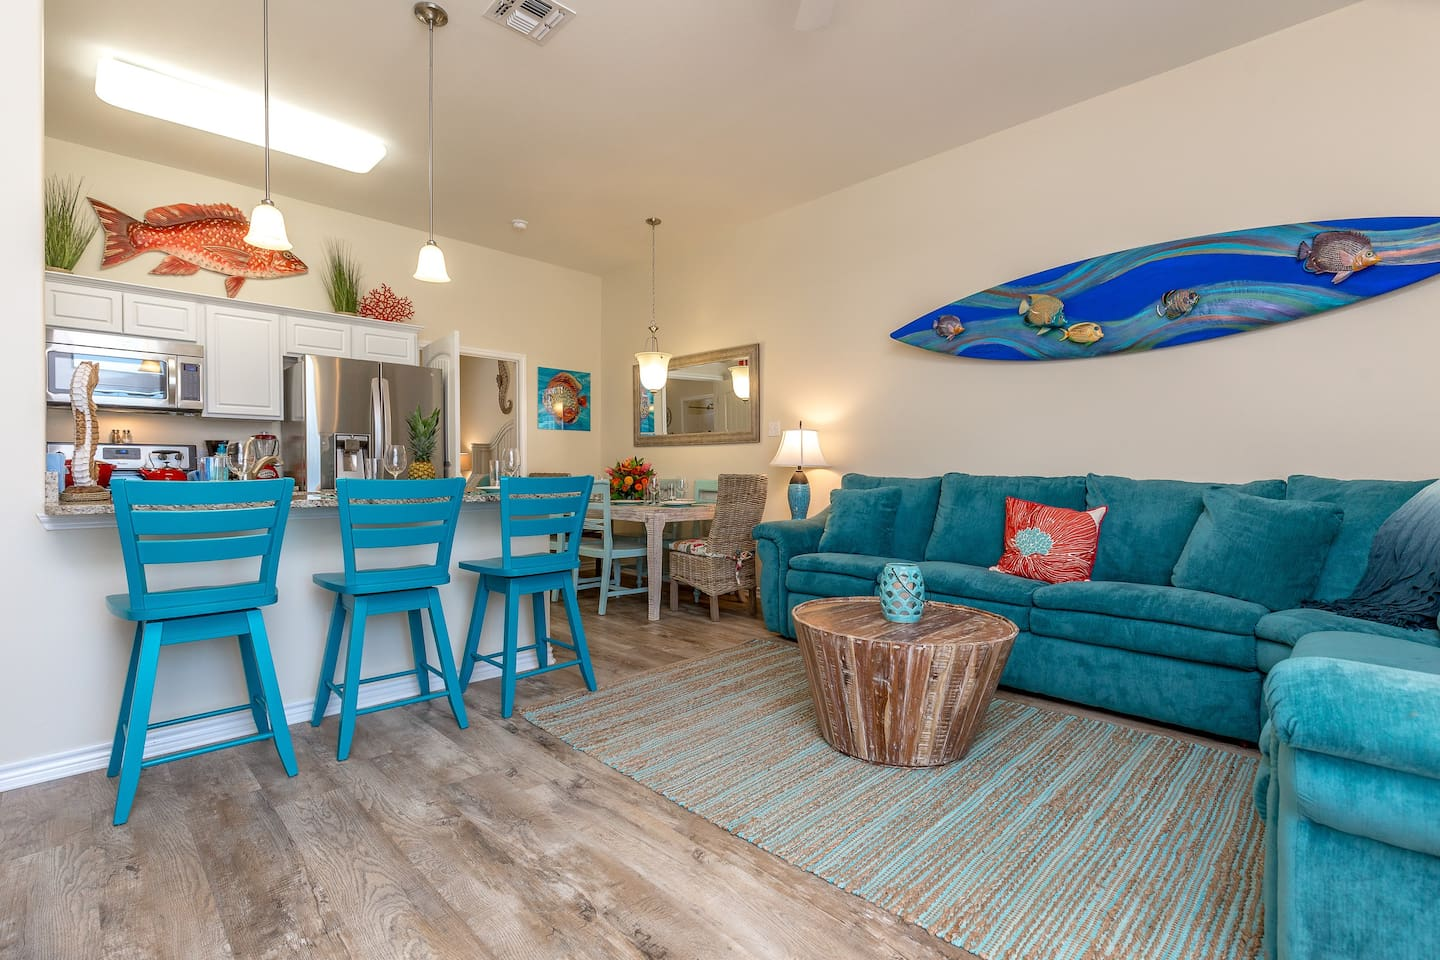 Bright blue decor reminds you that the beach is just a half-mile away.